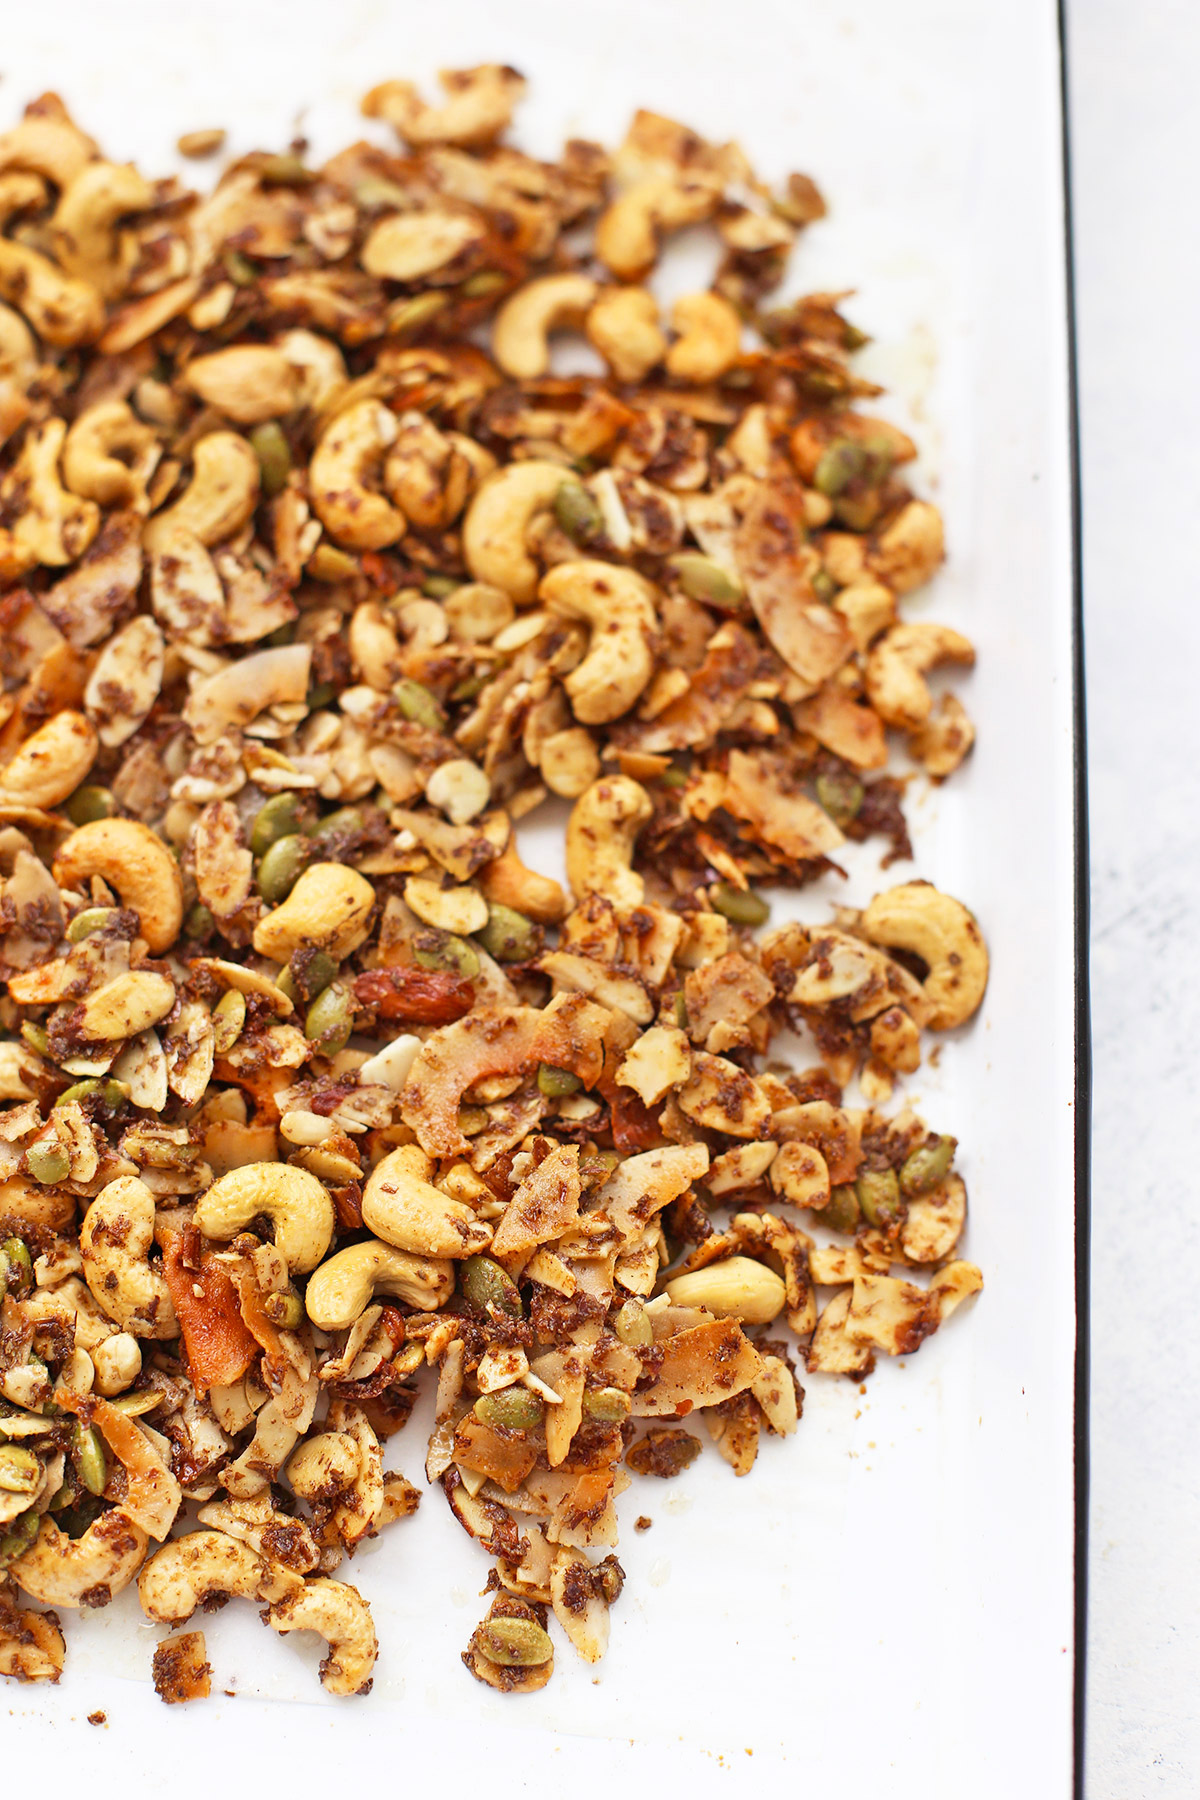 White sheet pan with paleo granola cooling